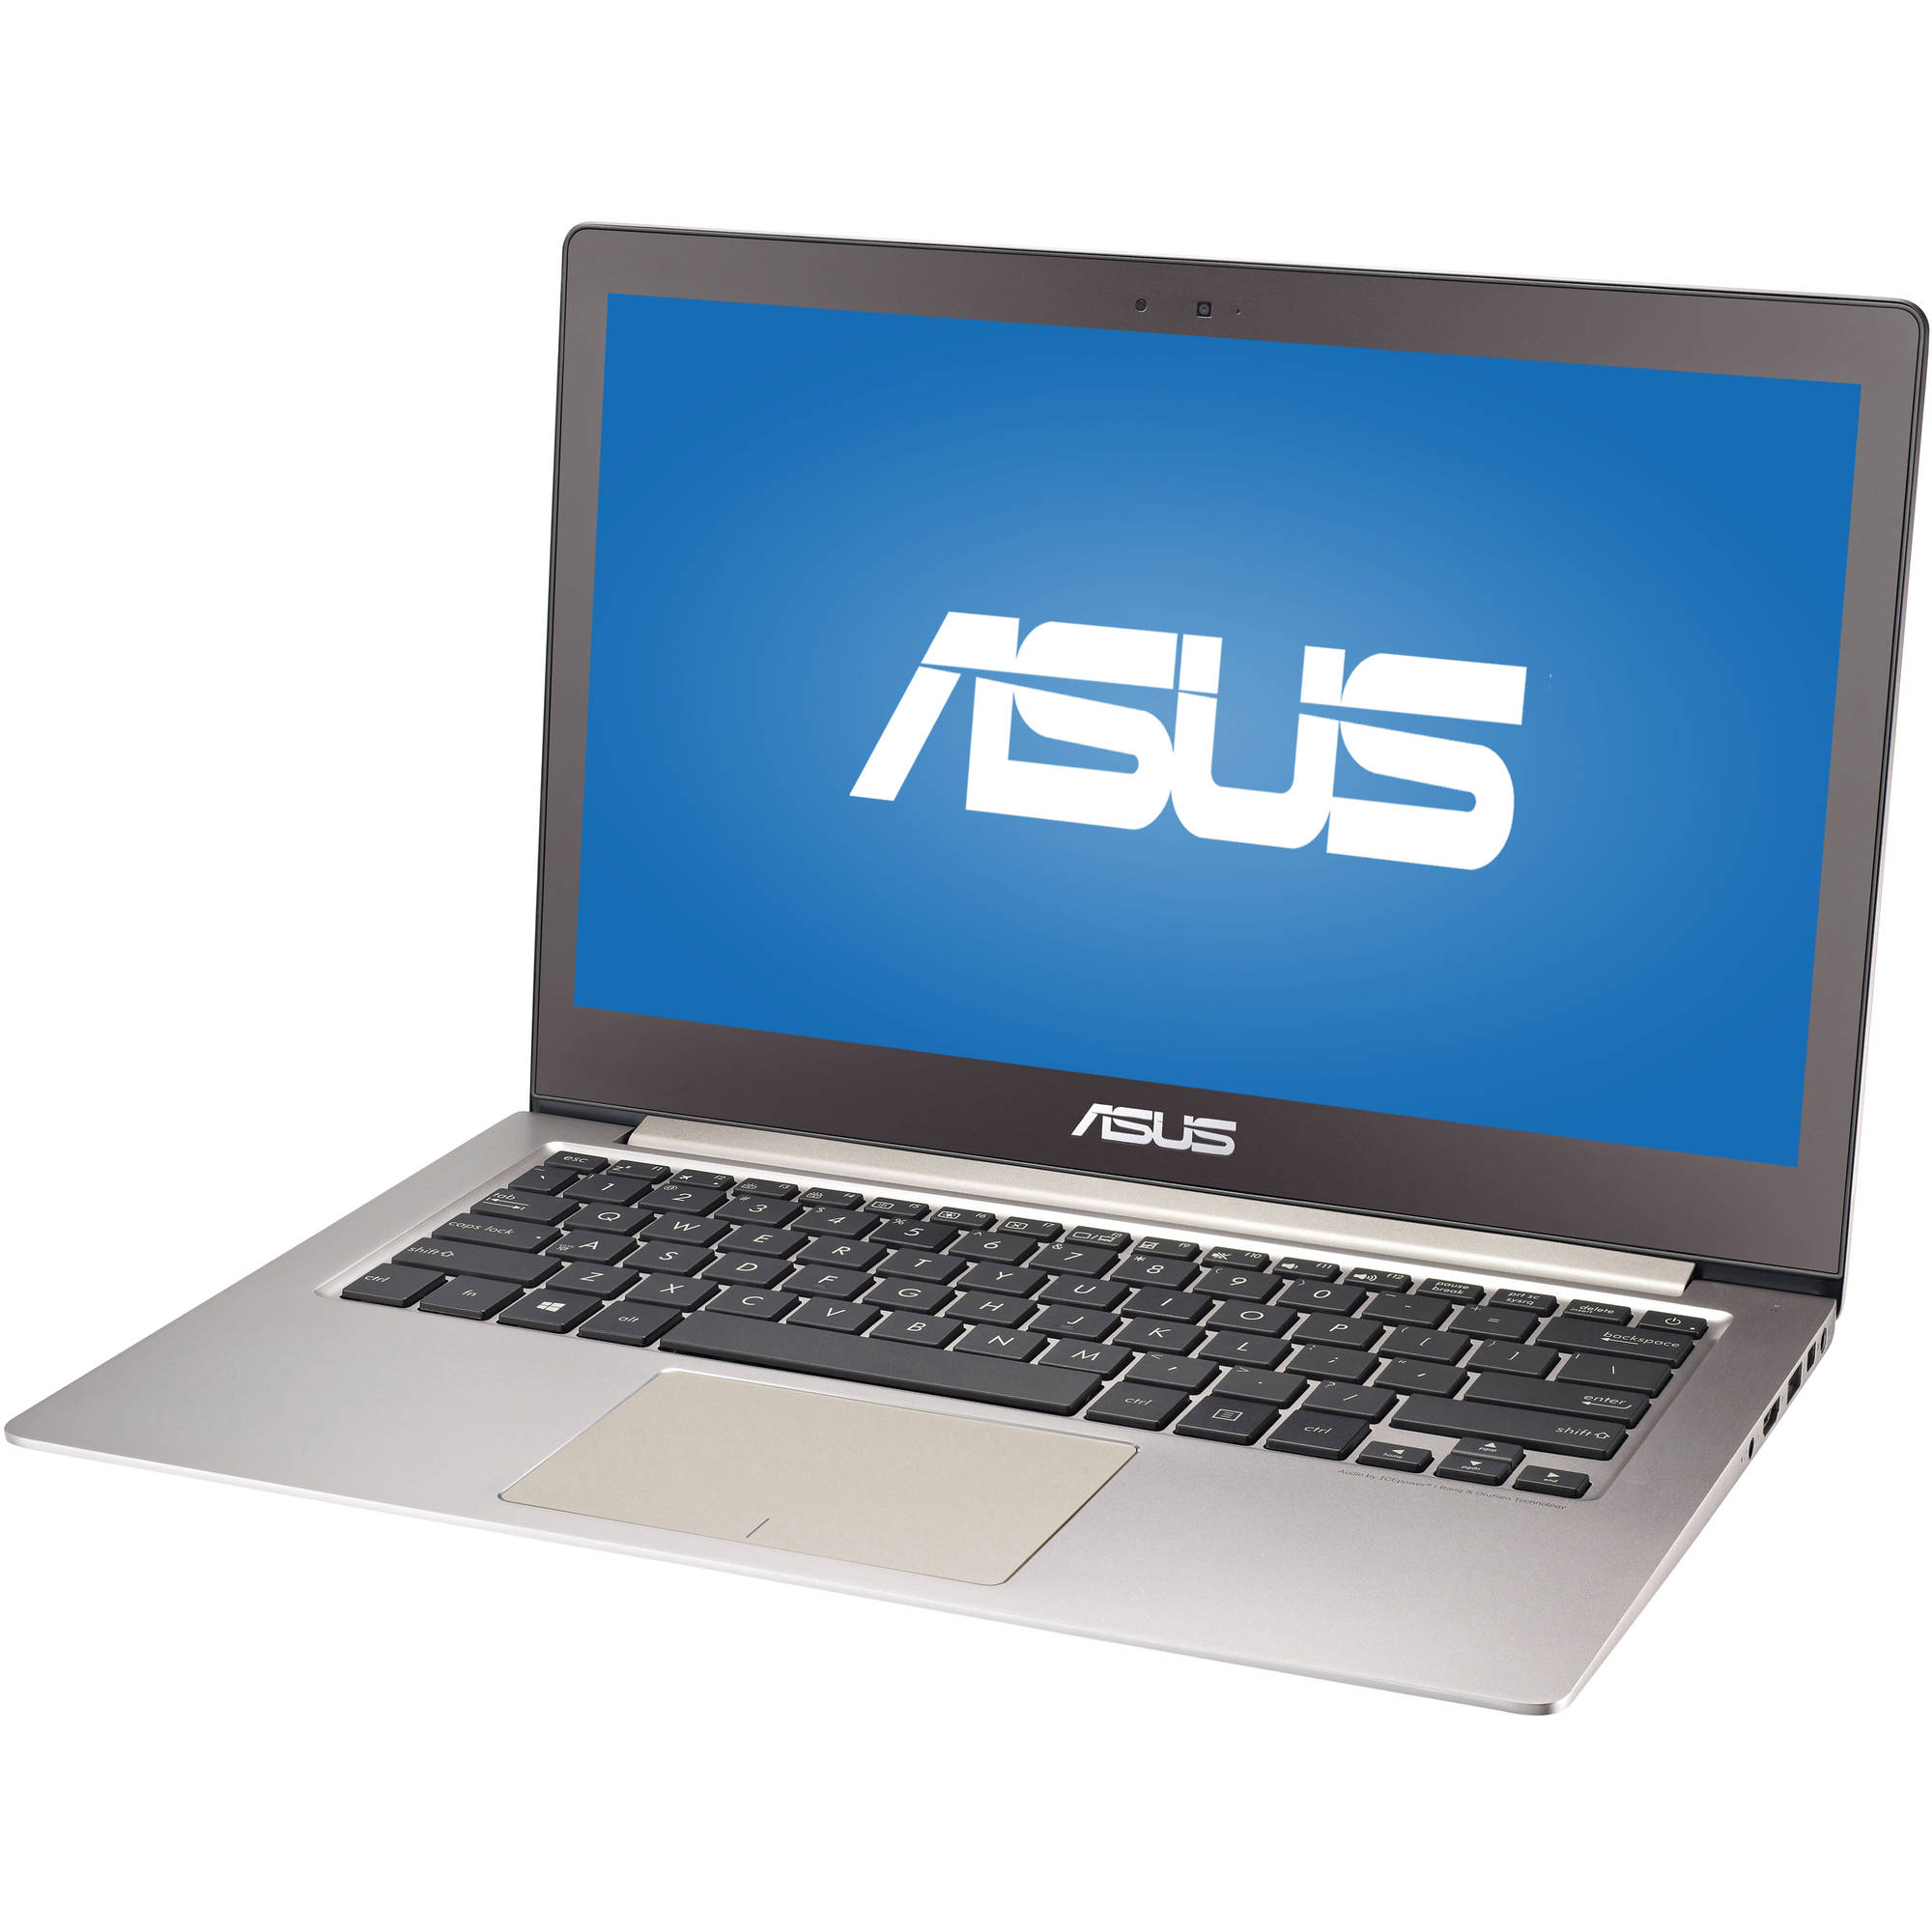 """ASUS Smokey Brown 13.3"""" ZENBOOK UX303UA-YS51 Laptop PC with Intel Core i5-6200U Processor, 4GB Memory, 128GB Solid State Drive and Windows 10 Home"""